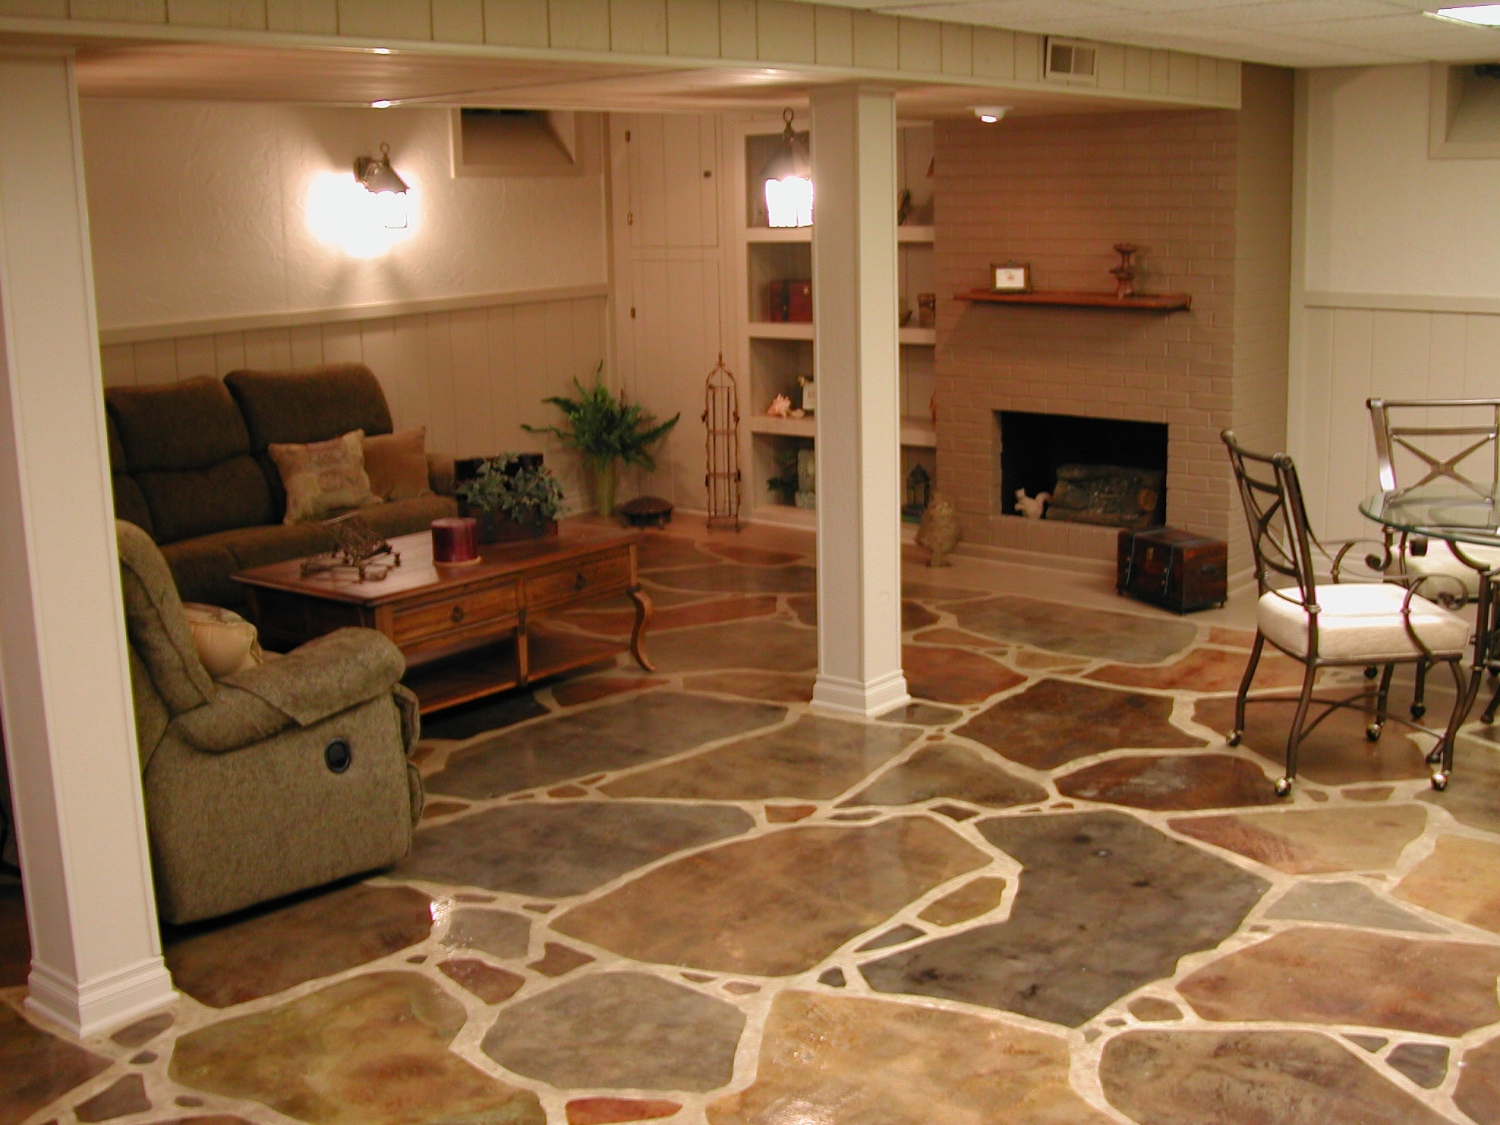 Basement Concrete Floor With Acid-Stained, Faux Finish Flagstone Design And Clear Sealer